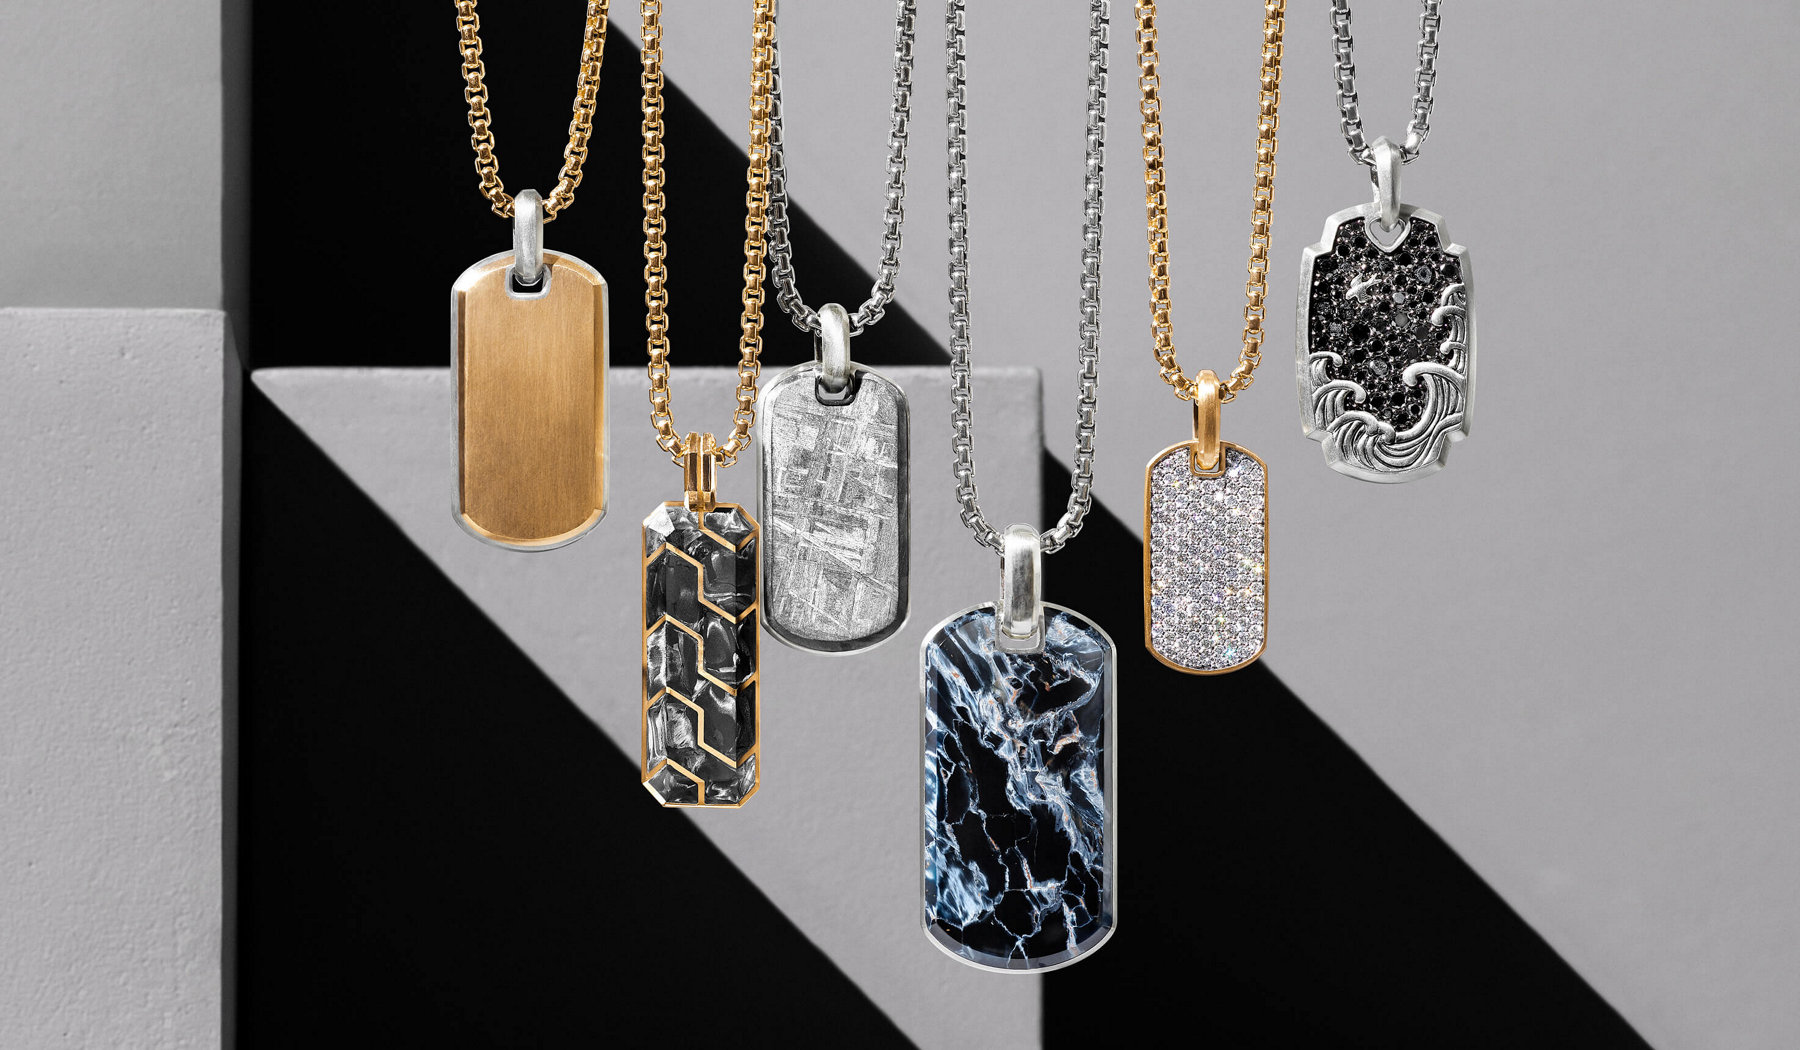 A color photograph shows six David Yurman men's tags hanging at alternating levels in a horizontal row, with each strung on an individual David Yurman men's Chain necklace crafted from sterling silver or 18K yellow gold. The jewelry is hanging in front of a beige stone block and beige stone background, both of which are covered half by a diagonal ray of light and the other half in shadow. From left, the tags include a Streamline design in sterling silver with 18K yellow gold, a Foged Carbon ingot design in 18K yellow gold, a Meteorite design in sterling silver, a Streamline design in sterling silver with pietersite, a Streamline design in 18K yellow gold with pavé white diamonds and a Waves design in sterling silver with pavé black diamonds.